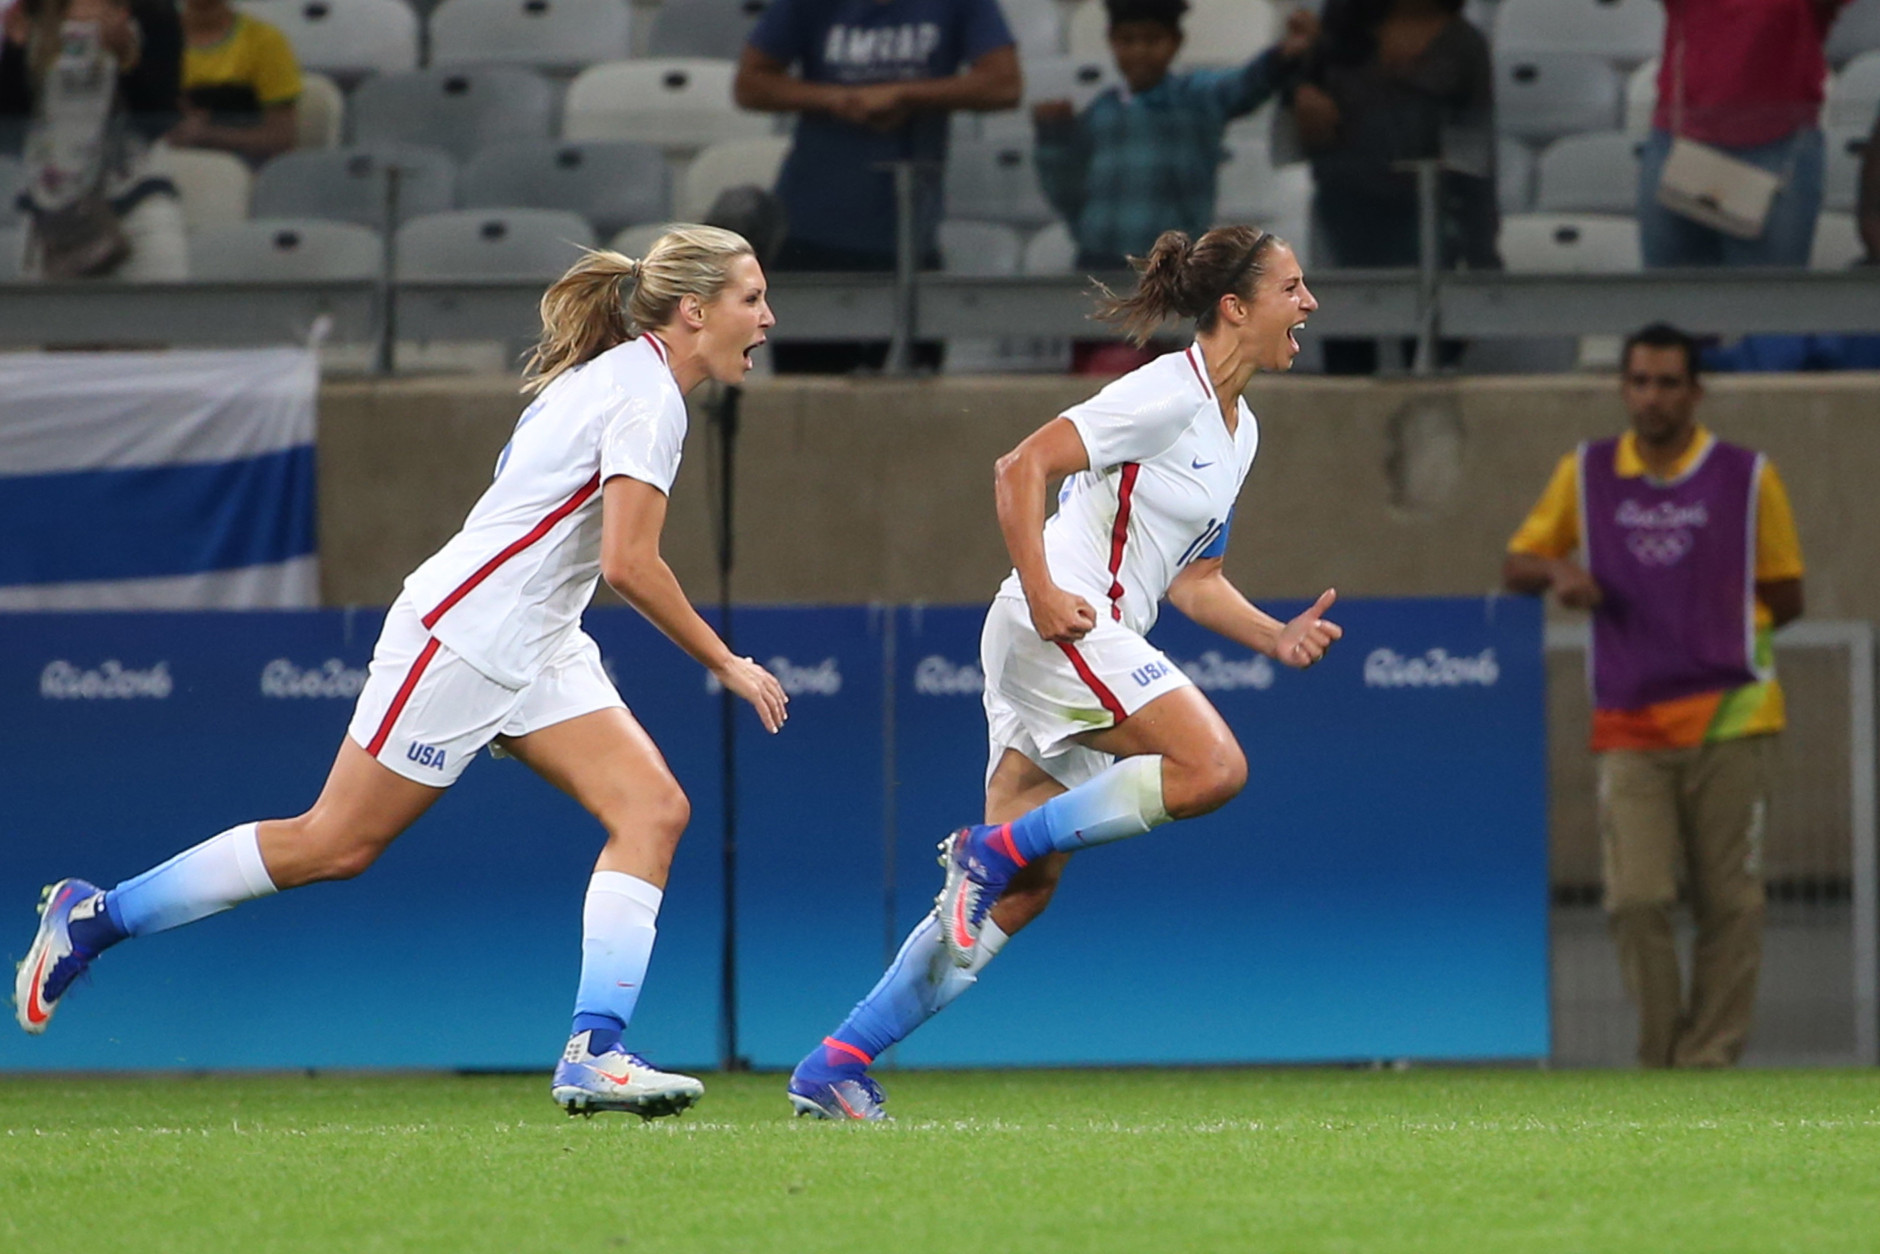 United States' Carli Lloyd, right, celebrates after scoring against New Zealand during a Women's Olympic Football Tournament match at the Mineirao stadium in Belo Horizonte, Brazil, Wednesday, Aug. 3, 2016. (AP Photo/Eugenio Savio)